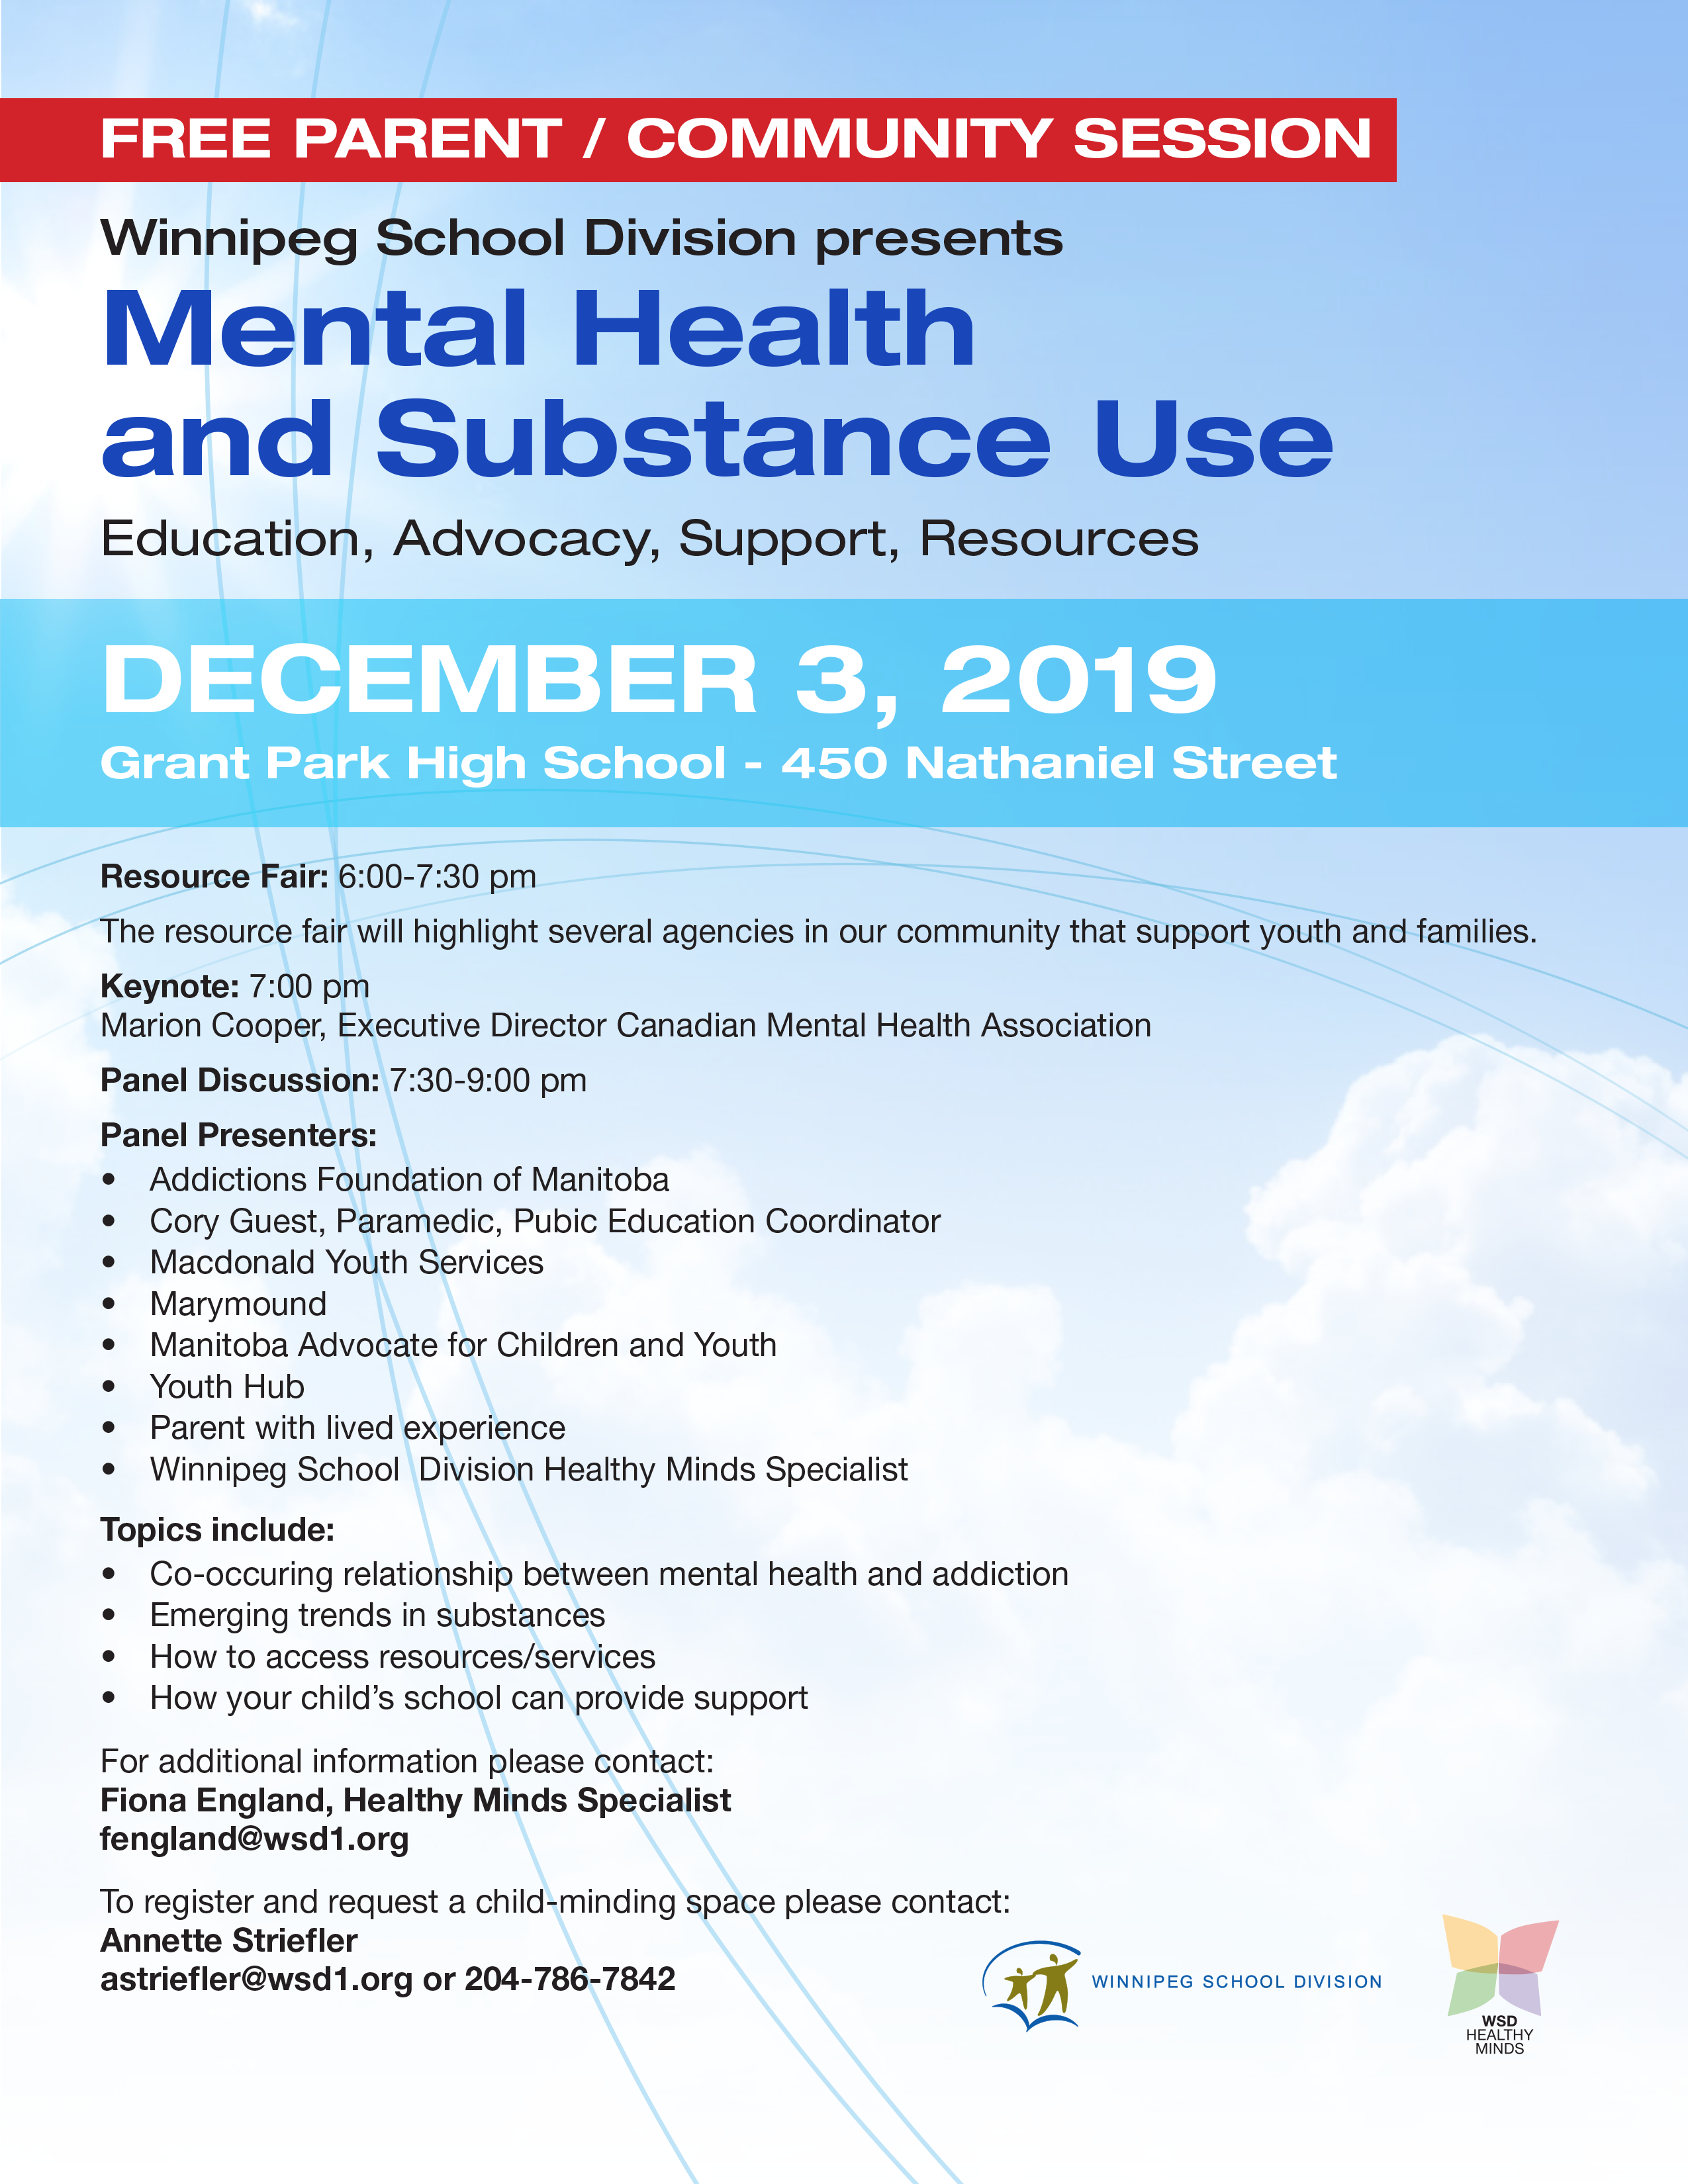 Mental Health and Substance Use Resource Fair and Panel Discussion.png